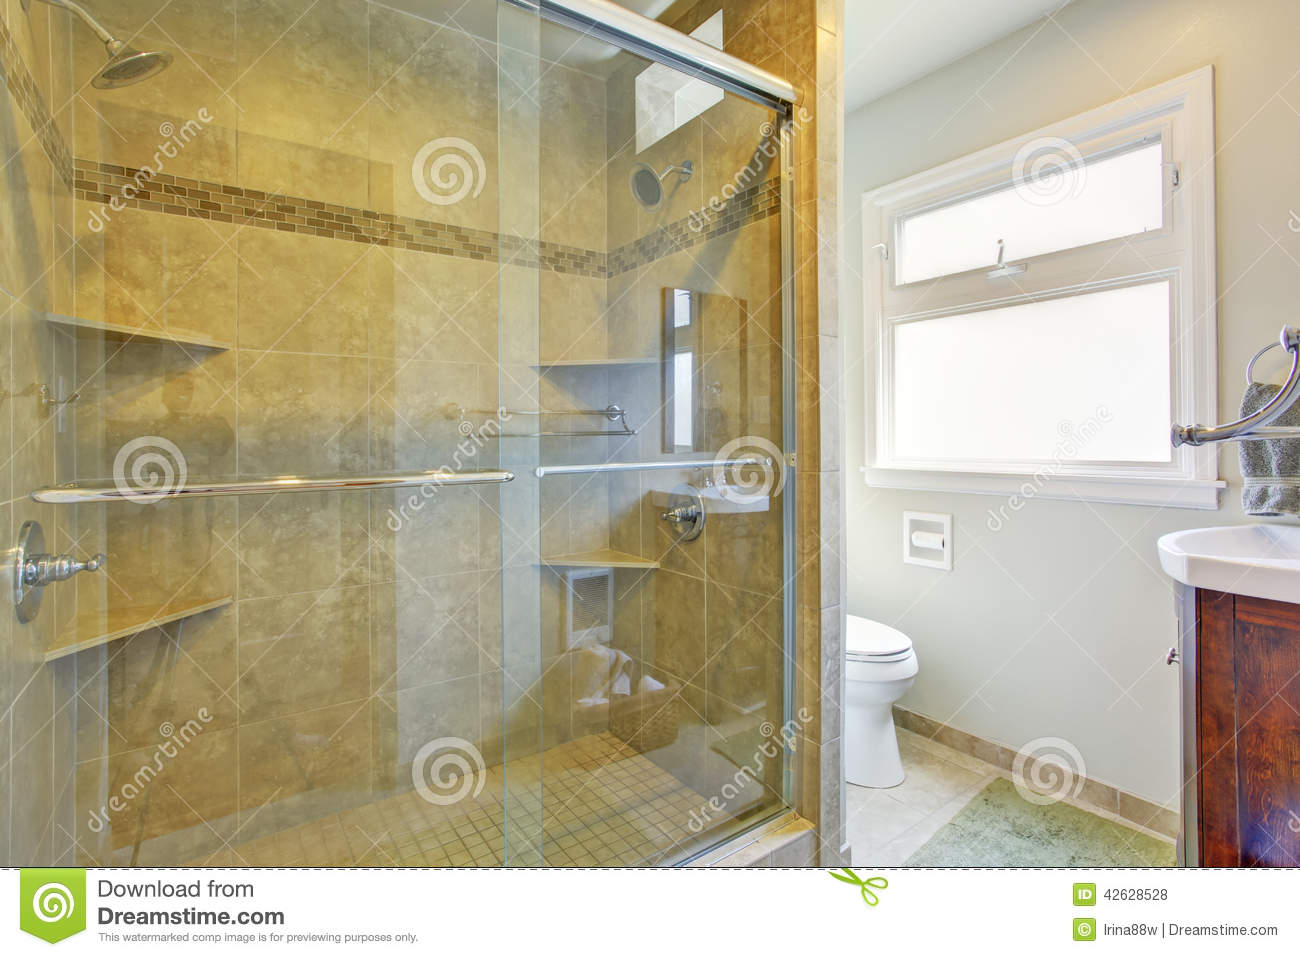 salle de bains moderne avec la douche en verre de porte photo stock image du architecture. Black Bedroom Furniture Sets. Home Design Ideas